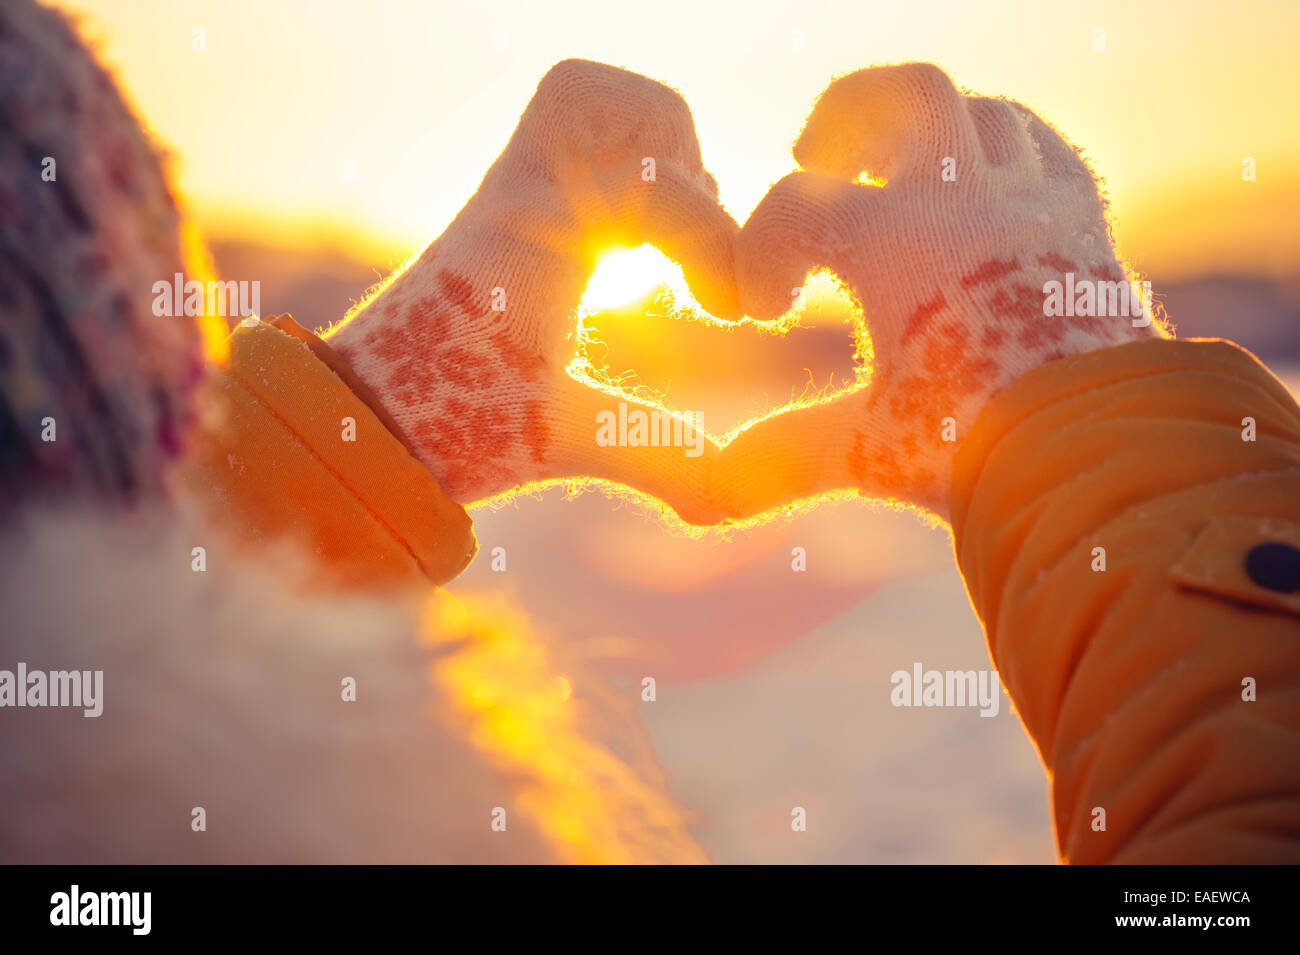 Woman hands in winter gloves Heart symbol shaped Lifestyle and Feelings concept with sunset light nature on background - Stock Image